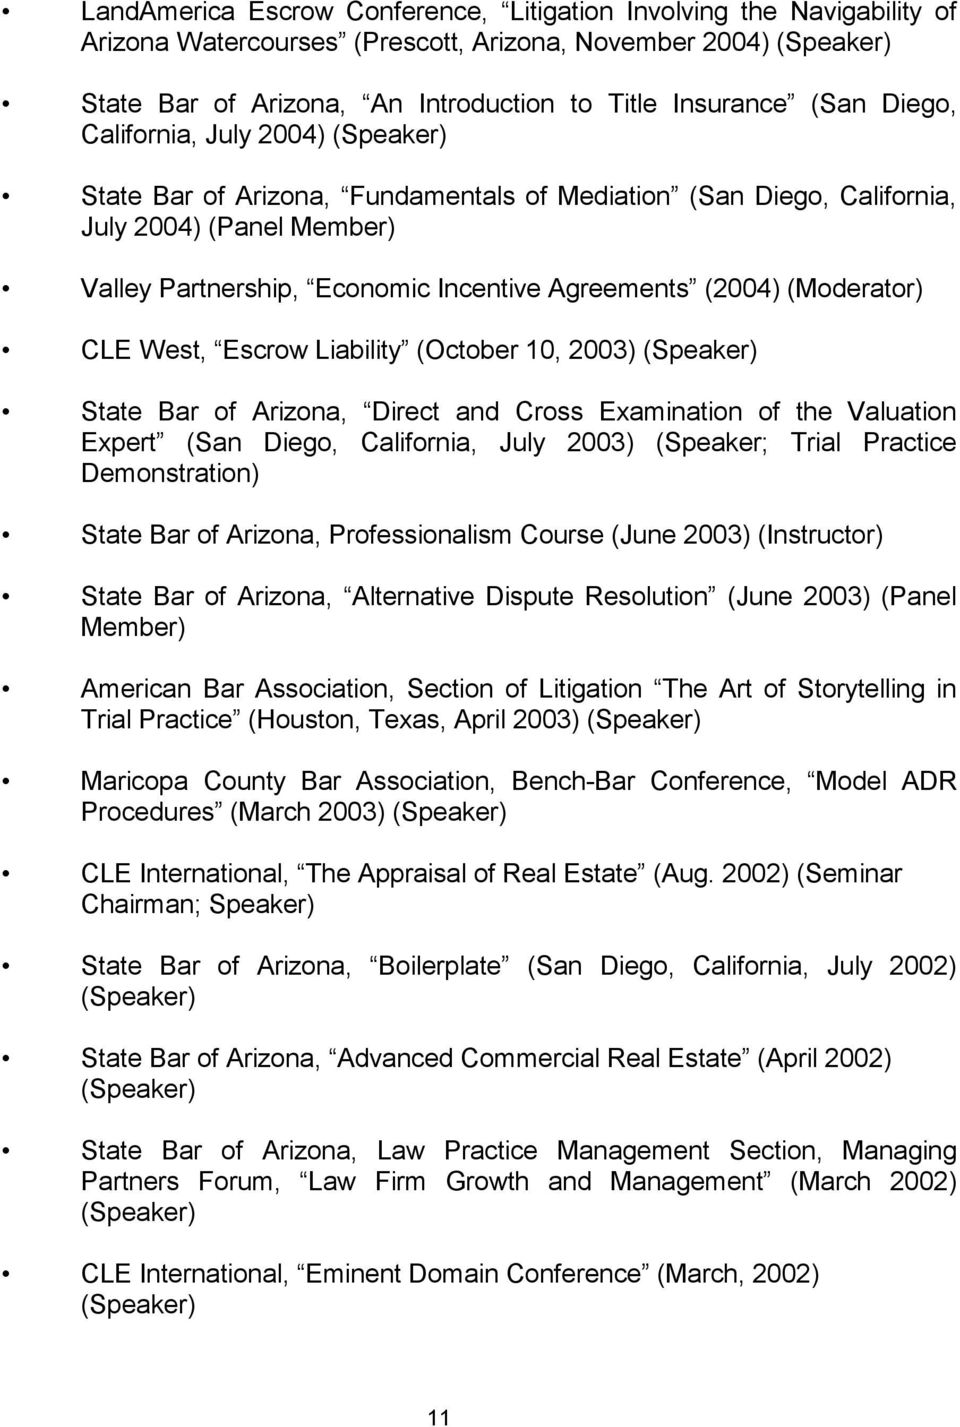 (Moderator) CLE West, Escrow Liability (October 10, 2003) (Speaker) State Bar of Arizona, Direct and Cross Examination of the Valuation Expert (San Diego, California, July 2003) (Speaker; Trial